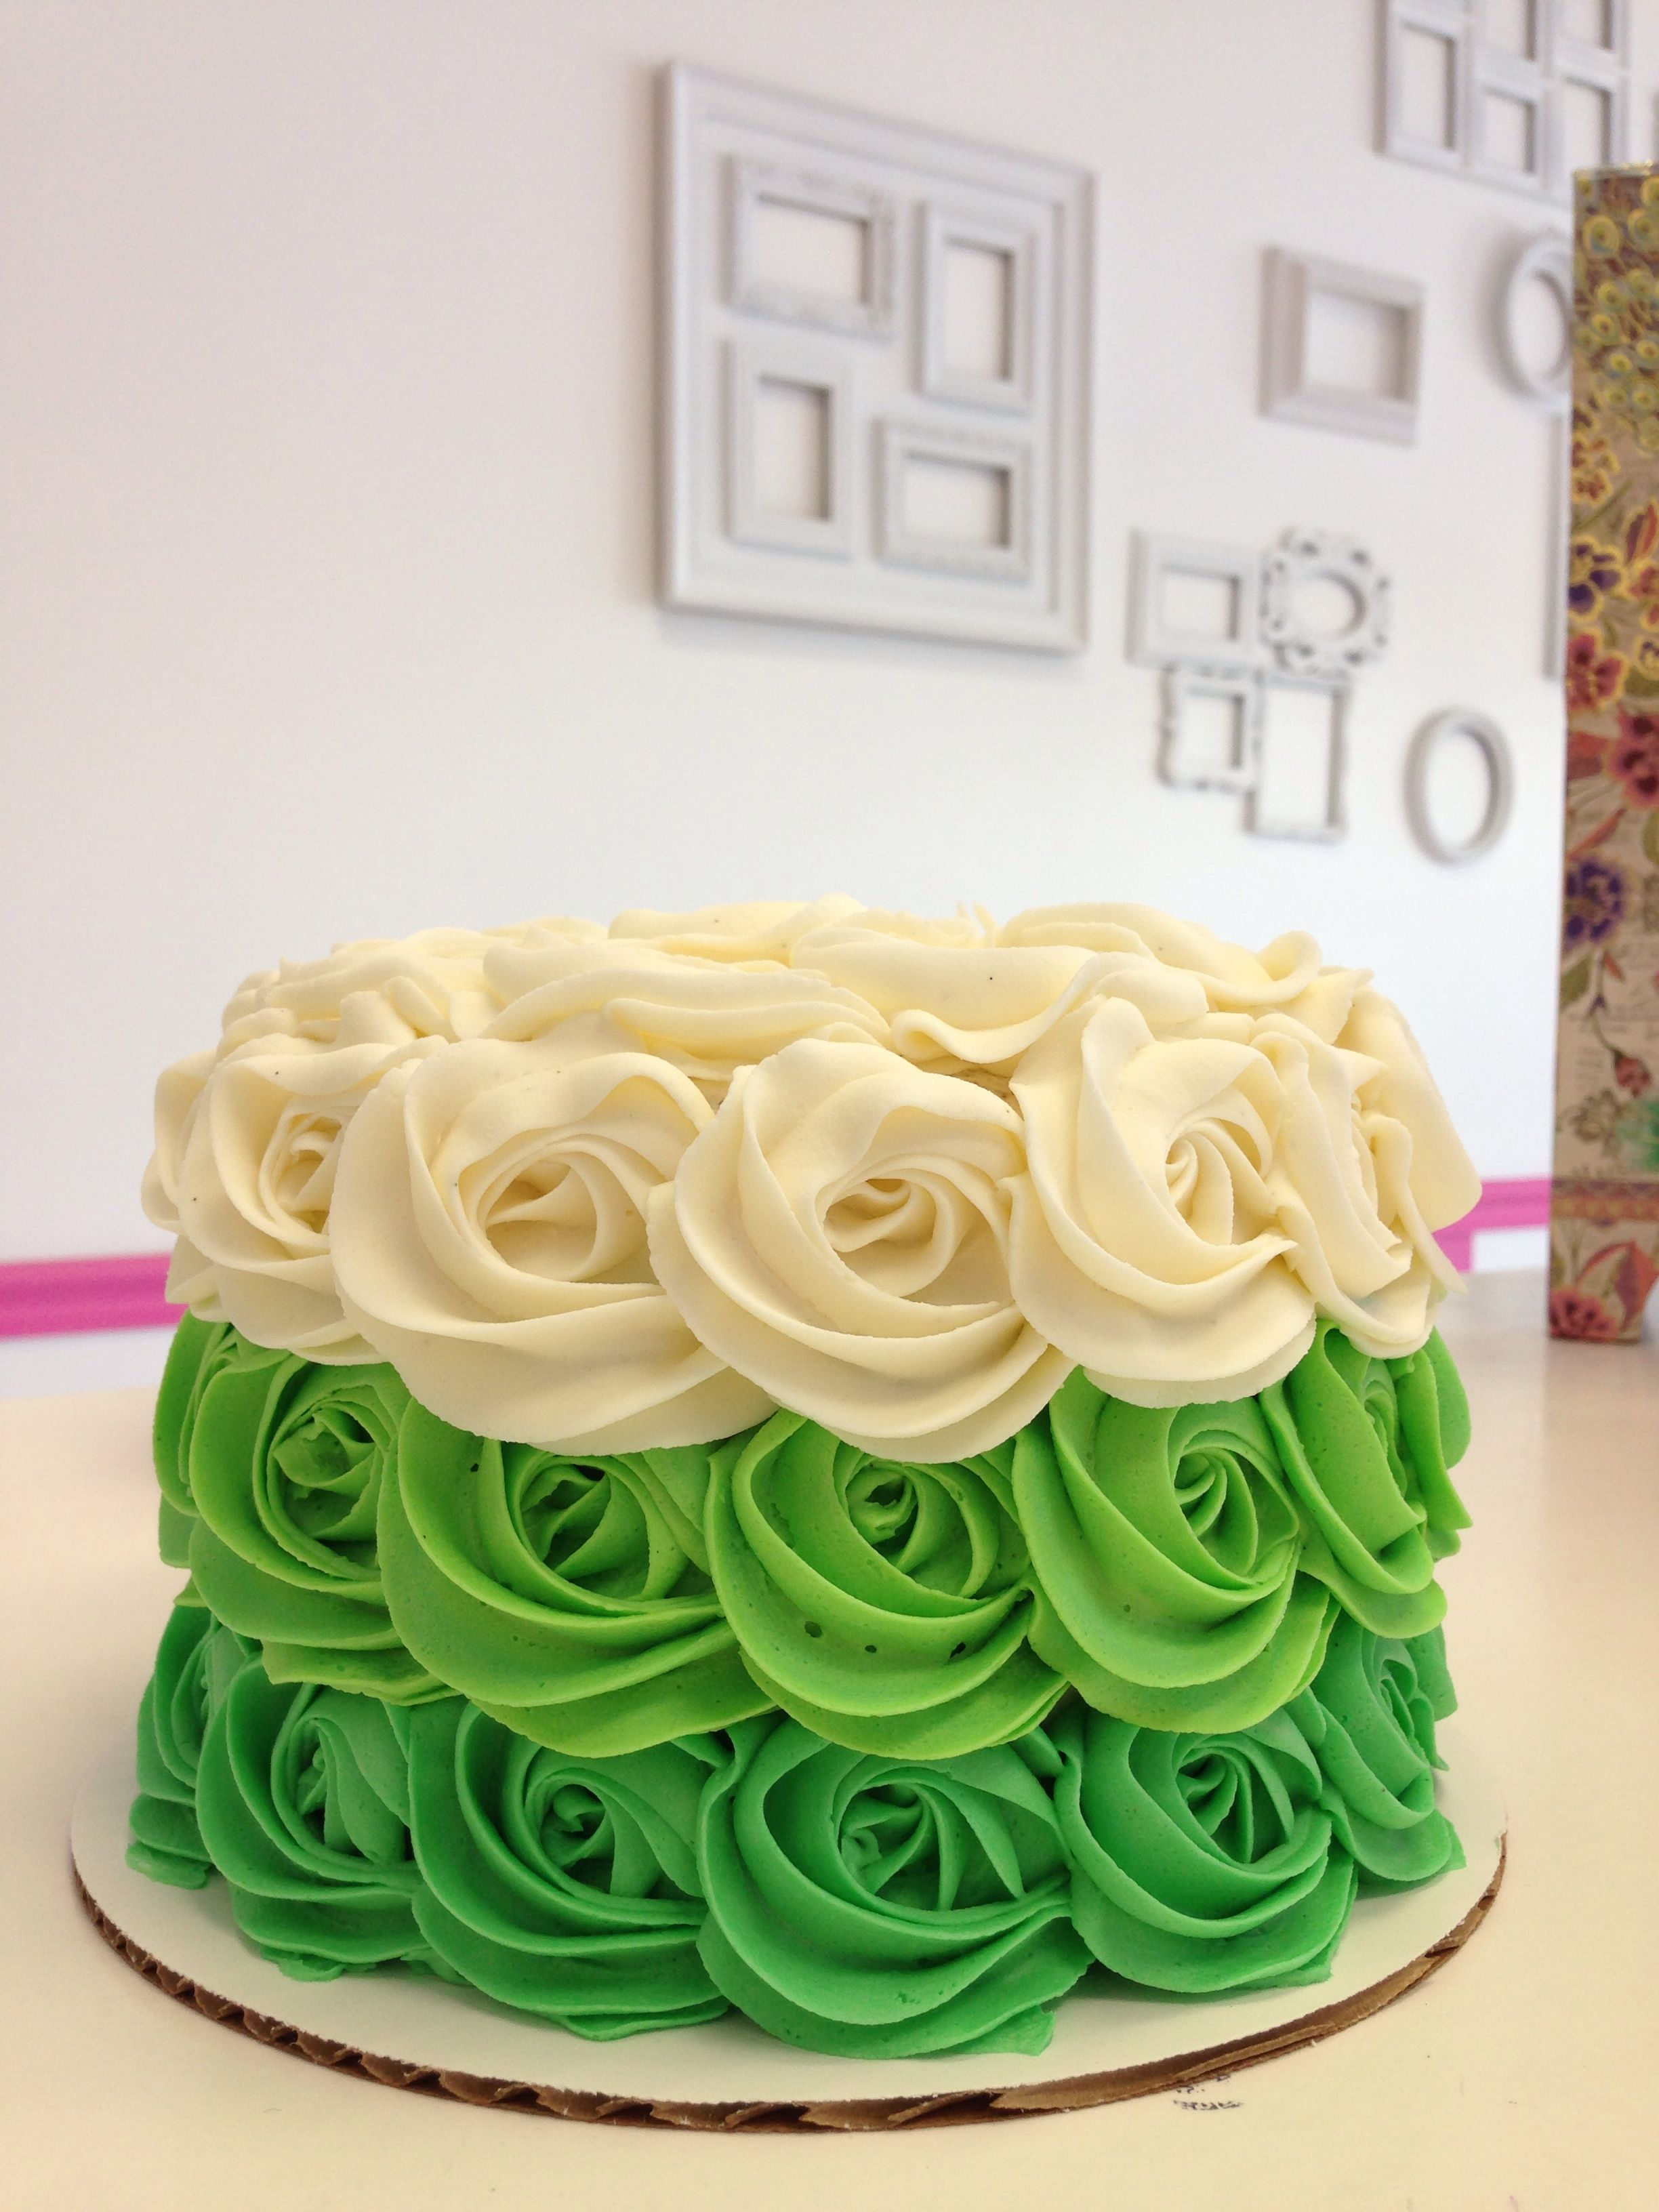 Green Ombre Rosette Cake By Goodie Girls